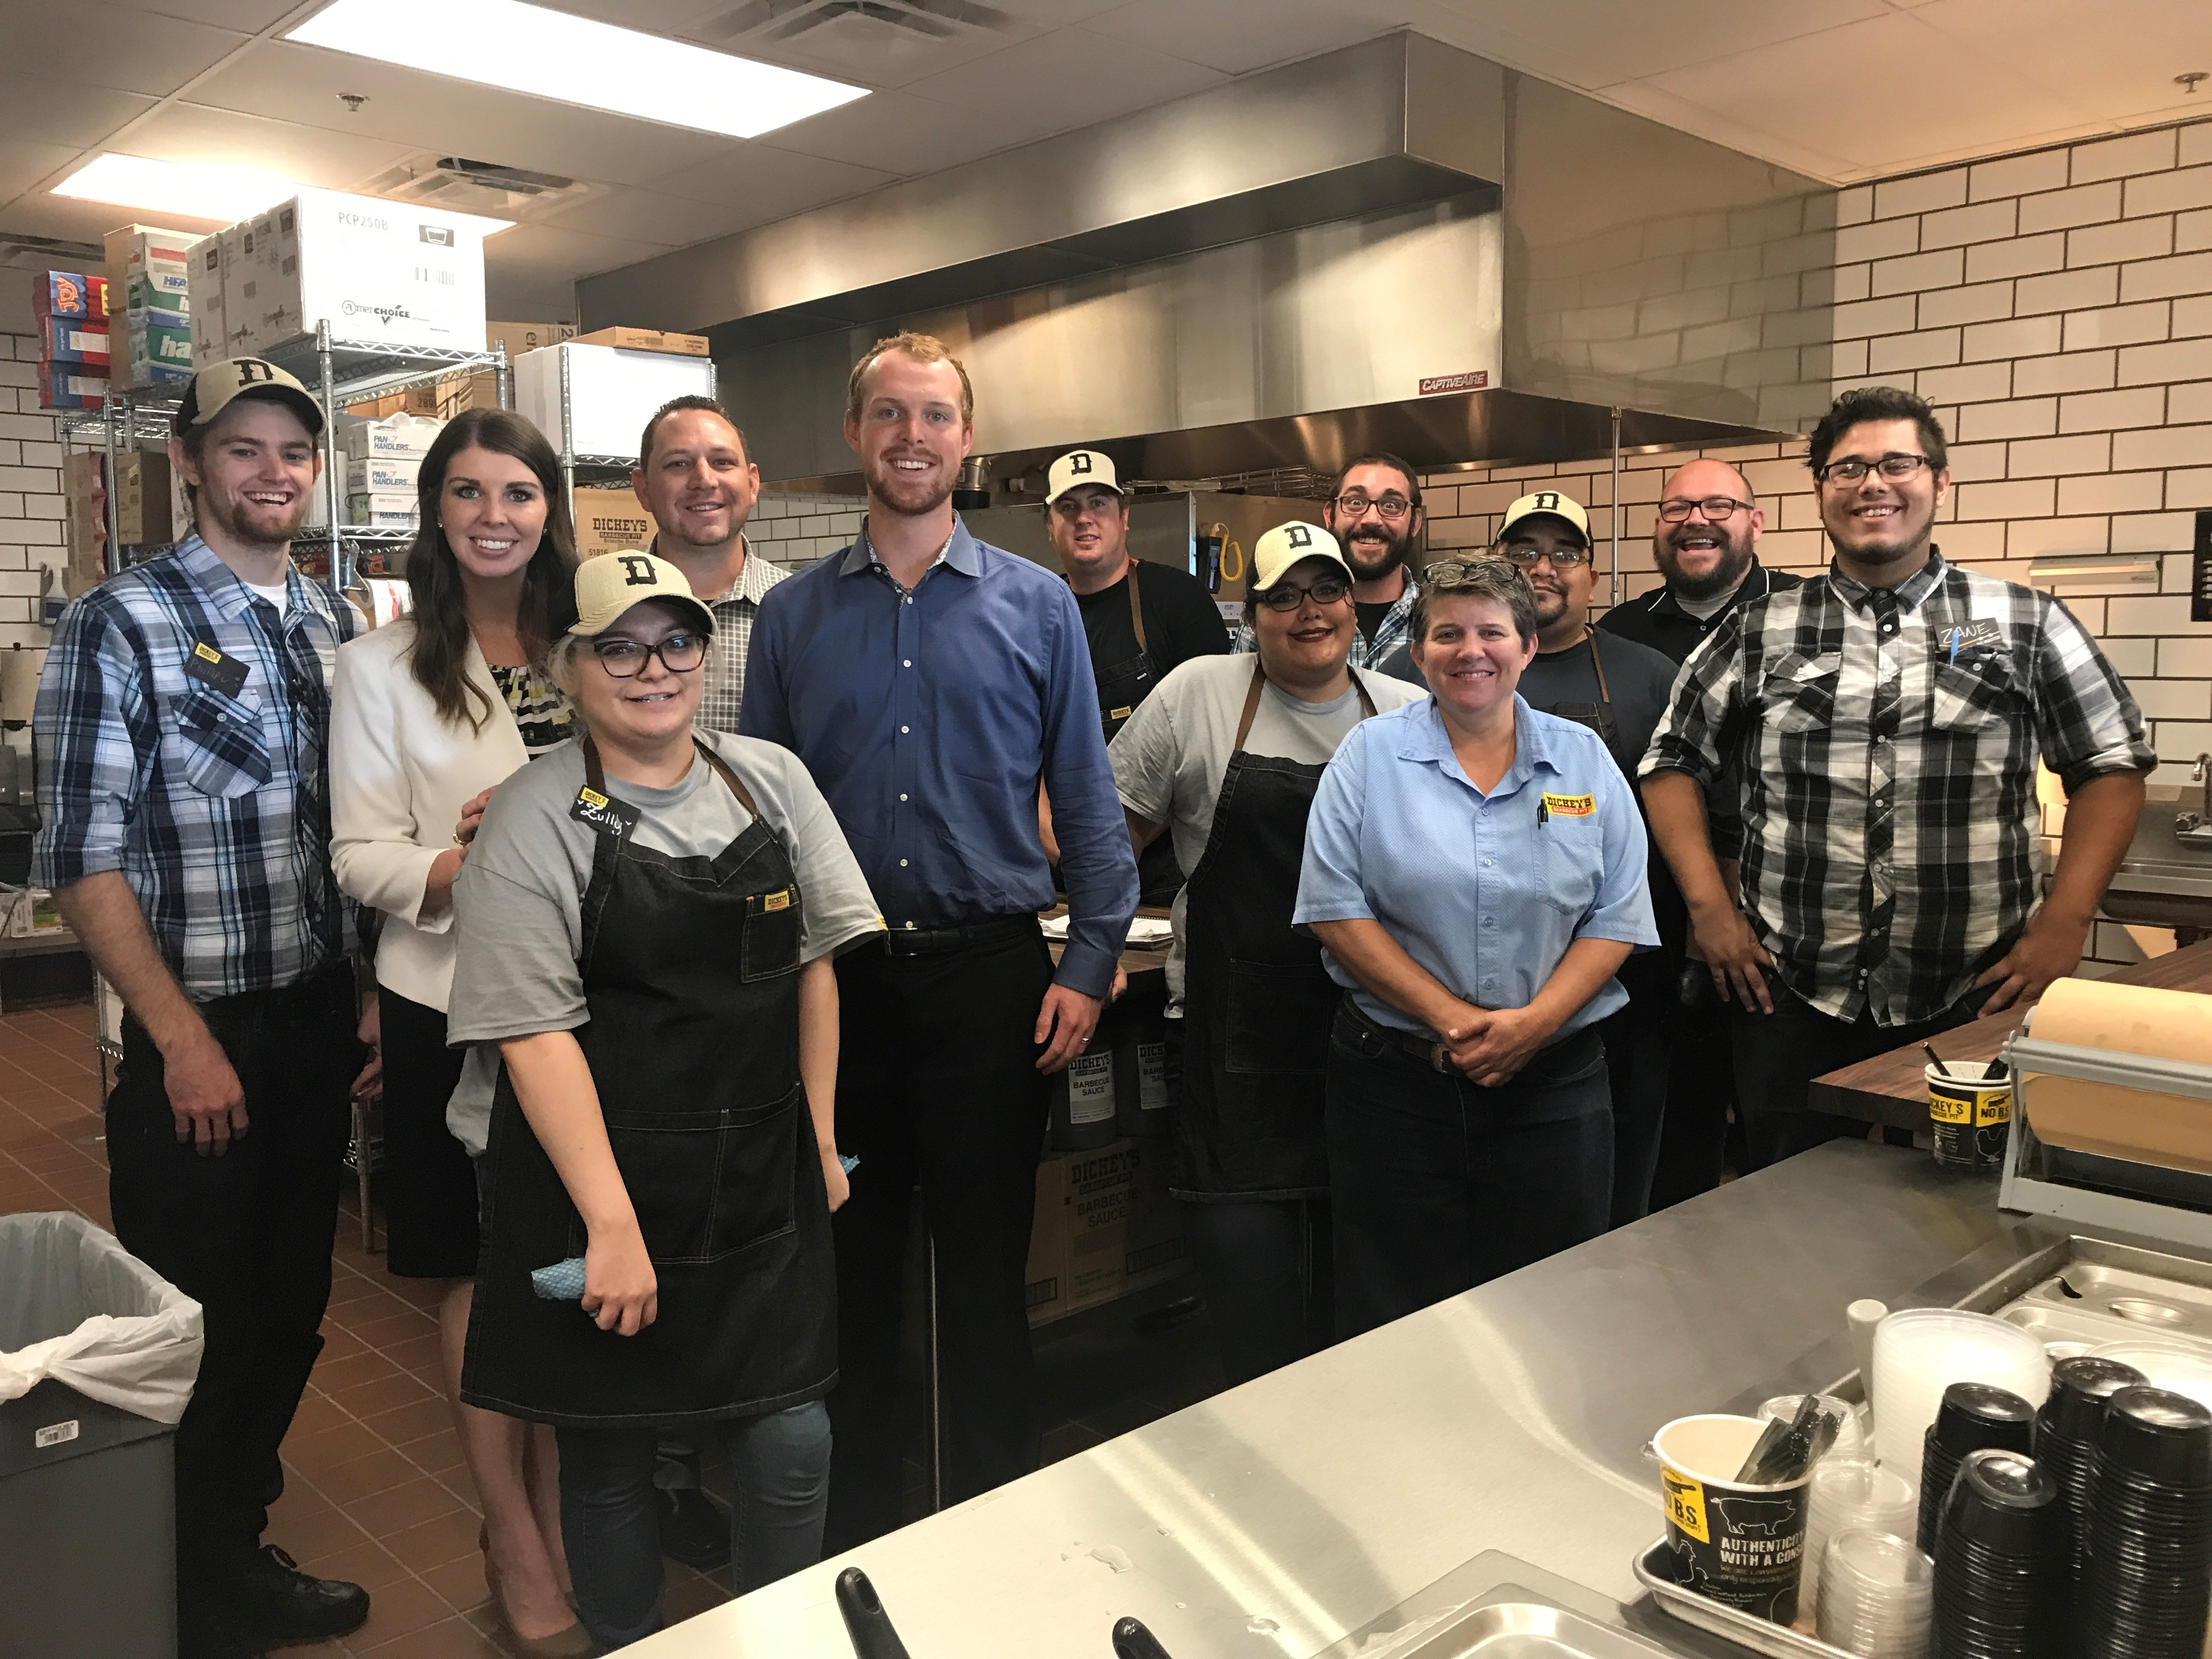 Local Entrepreneurs Bring Their Fifth Dickey's Barbecue Pit to Arizona